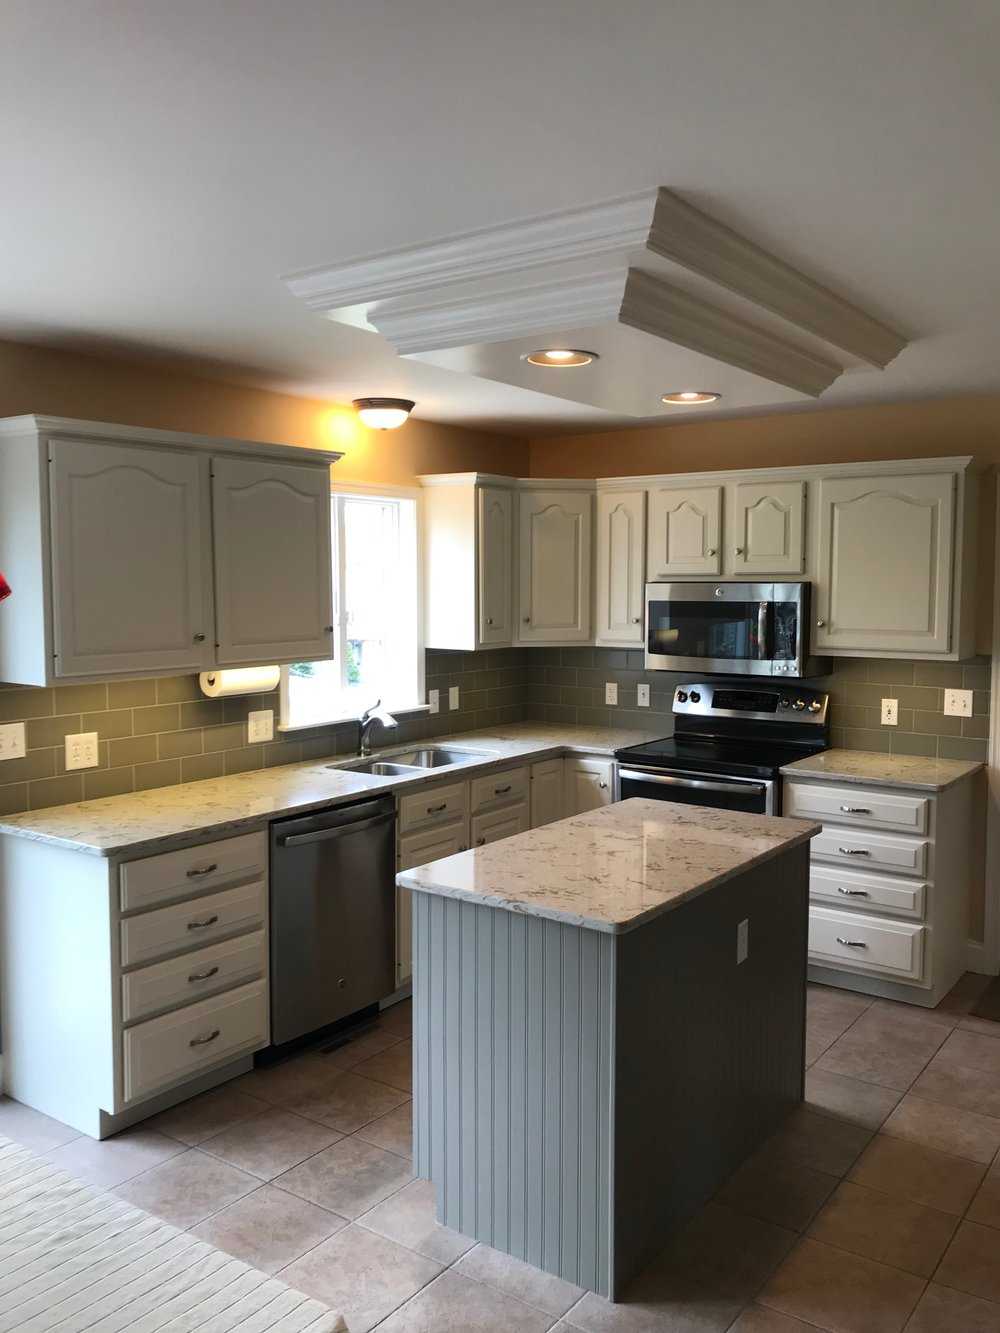 After - Kitchen cabinets painted white in Hummelstown pa